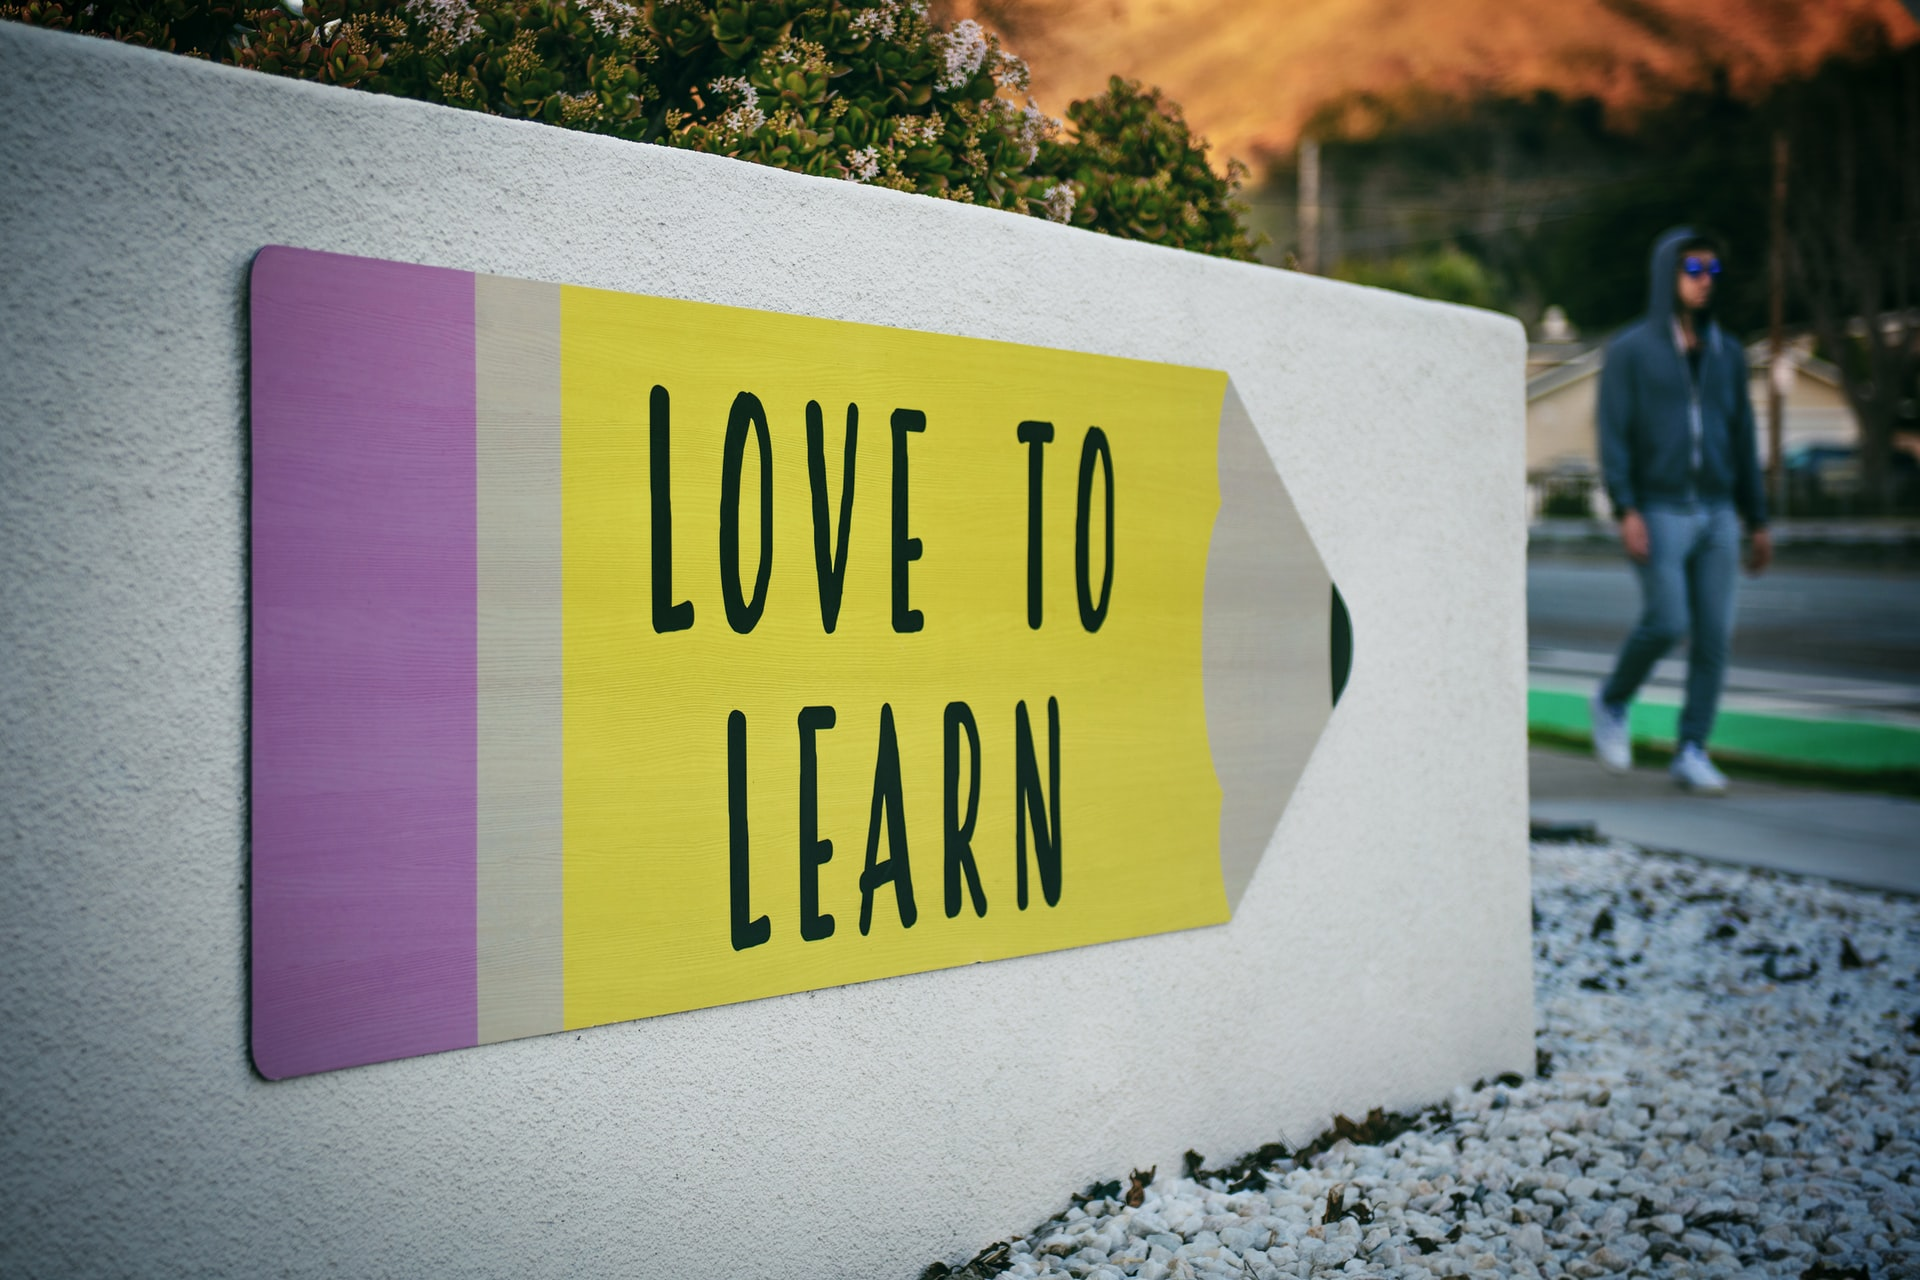 'Love to Learn' sign. Photo by @timmossholder via Unsplash